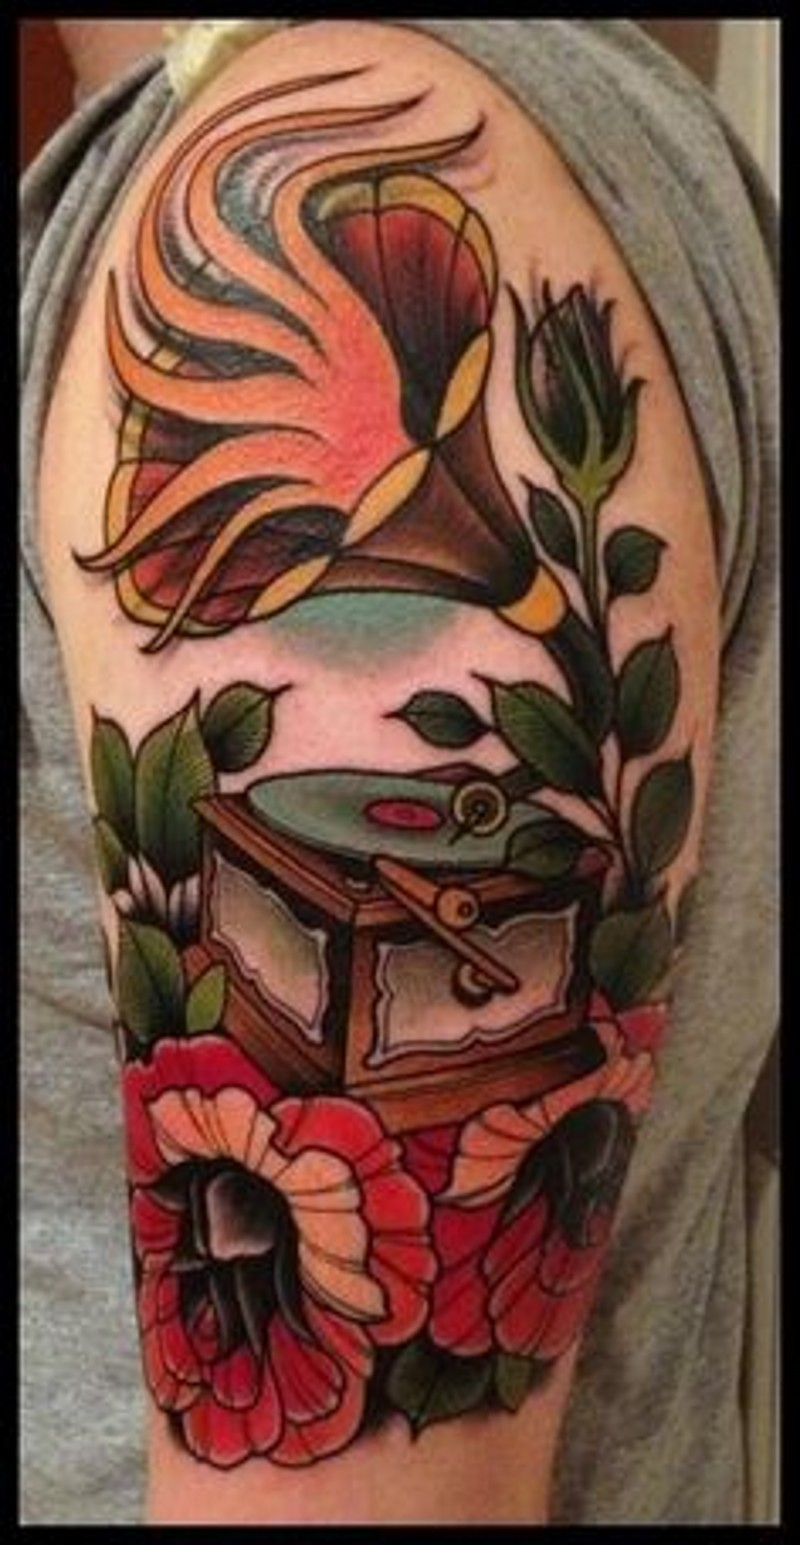 Old school style colored gramophone tattoo on shoulder with flowers and flames